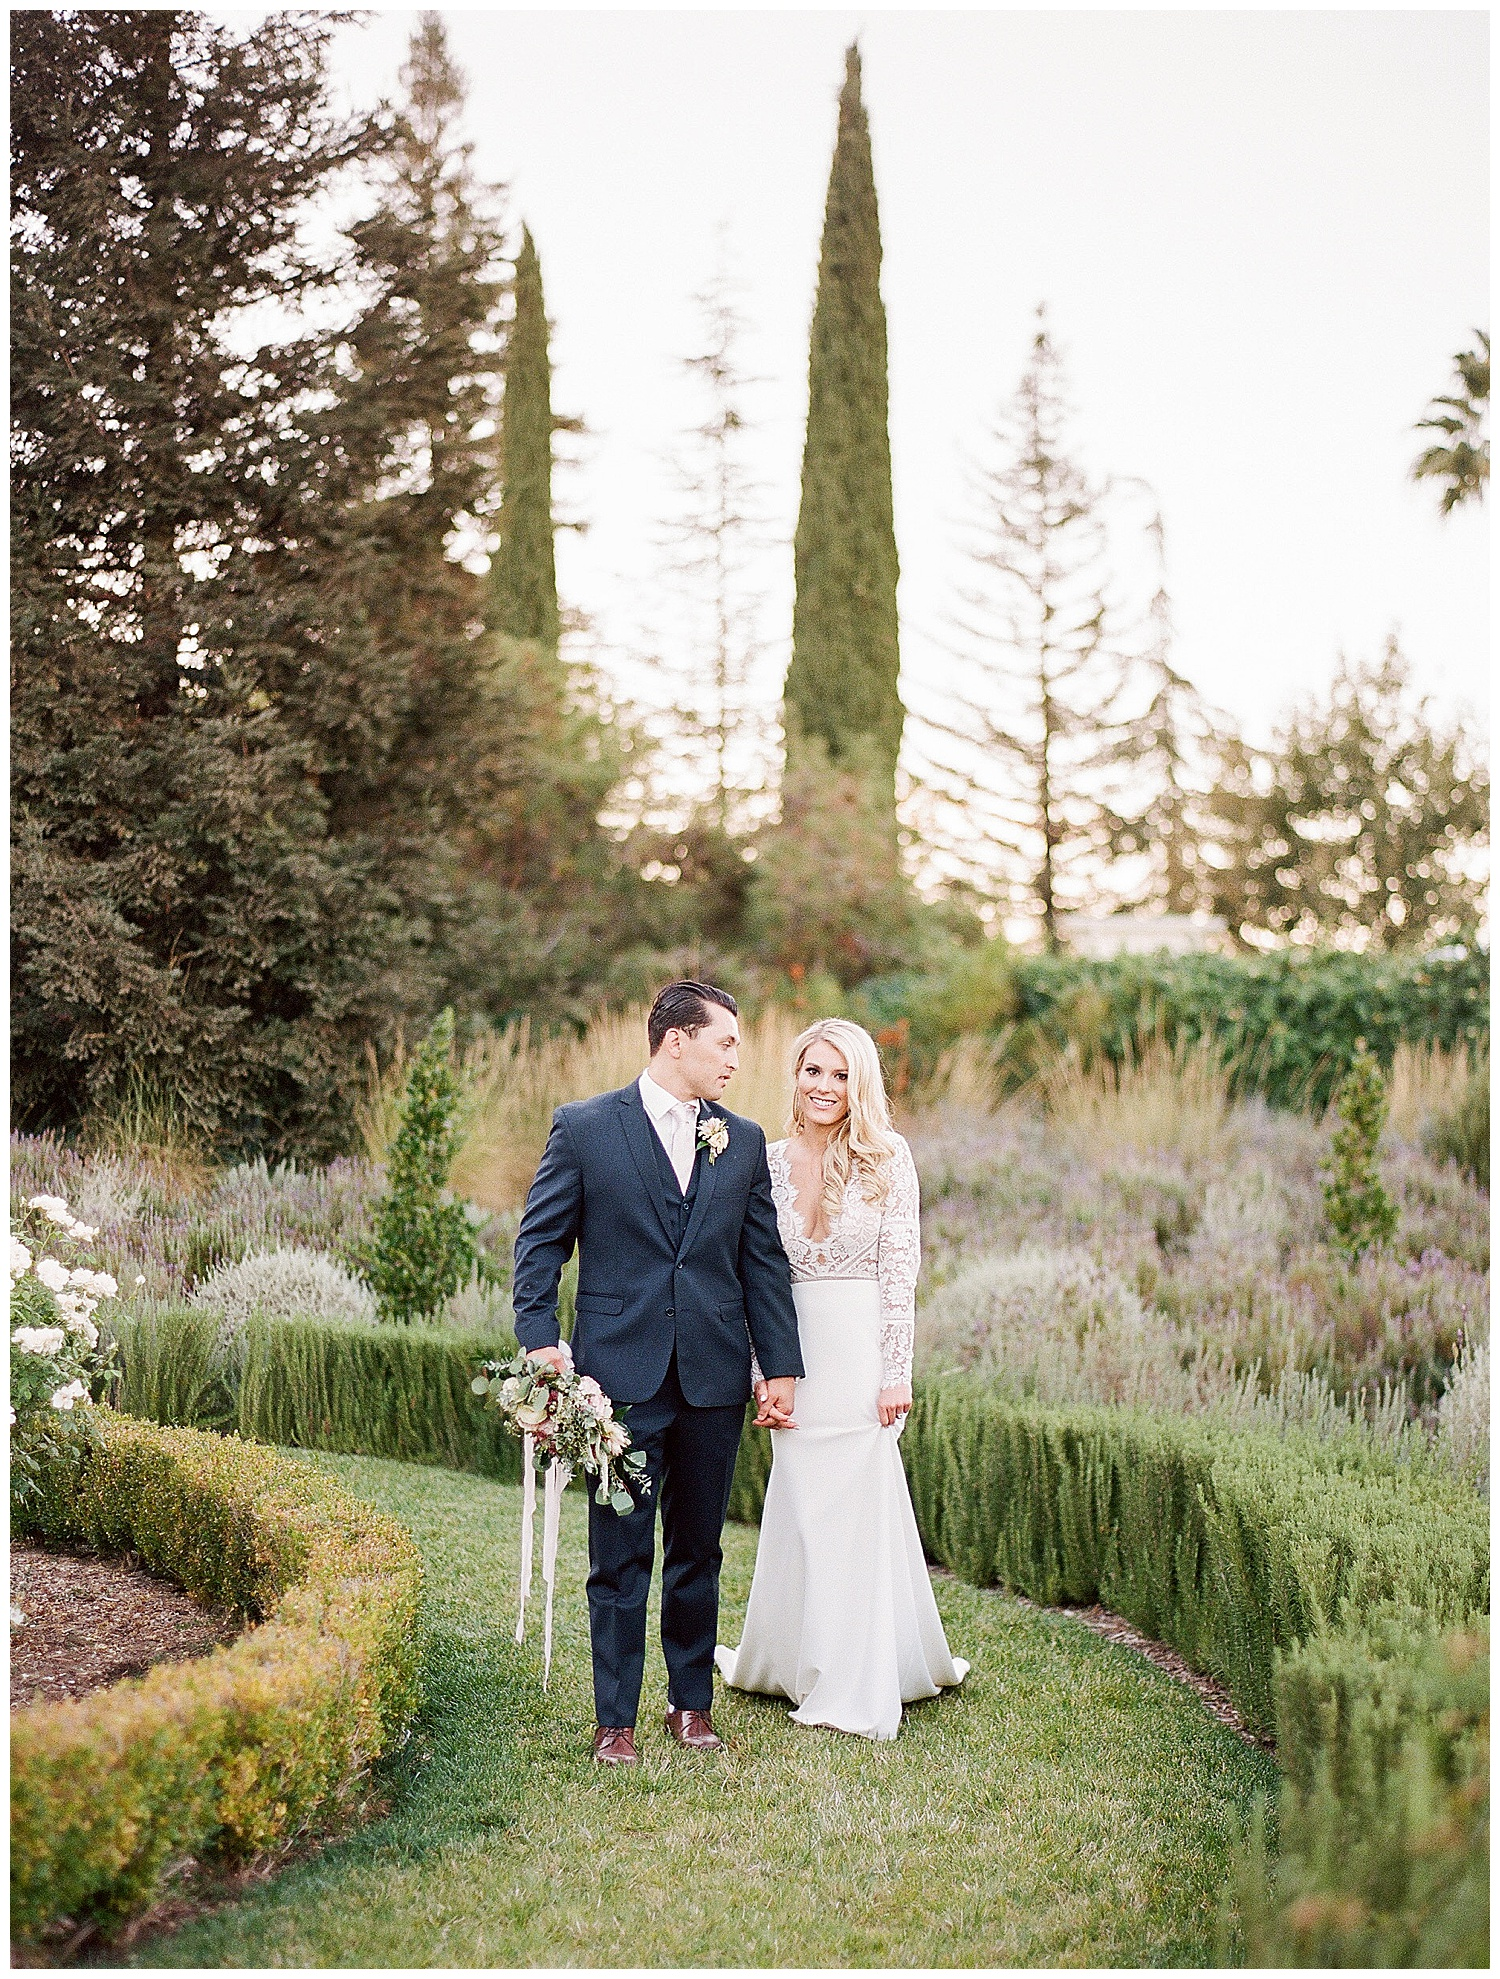 Janine_Licare_Photography_San_Francisco_Wedding_Photographer_Carneros_Tyge_Williams_Sonoma_Napa_0254.jpg